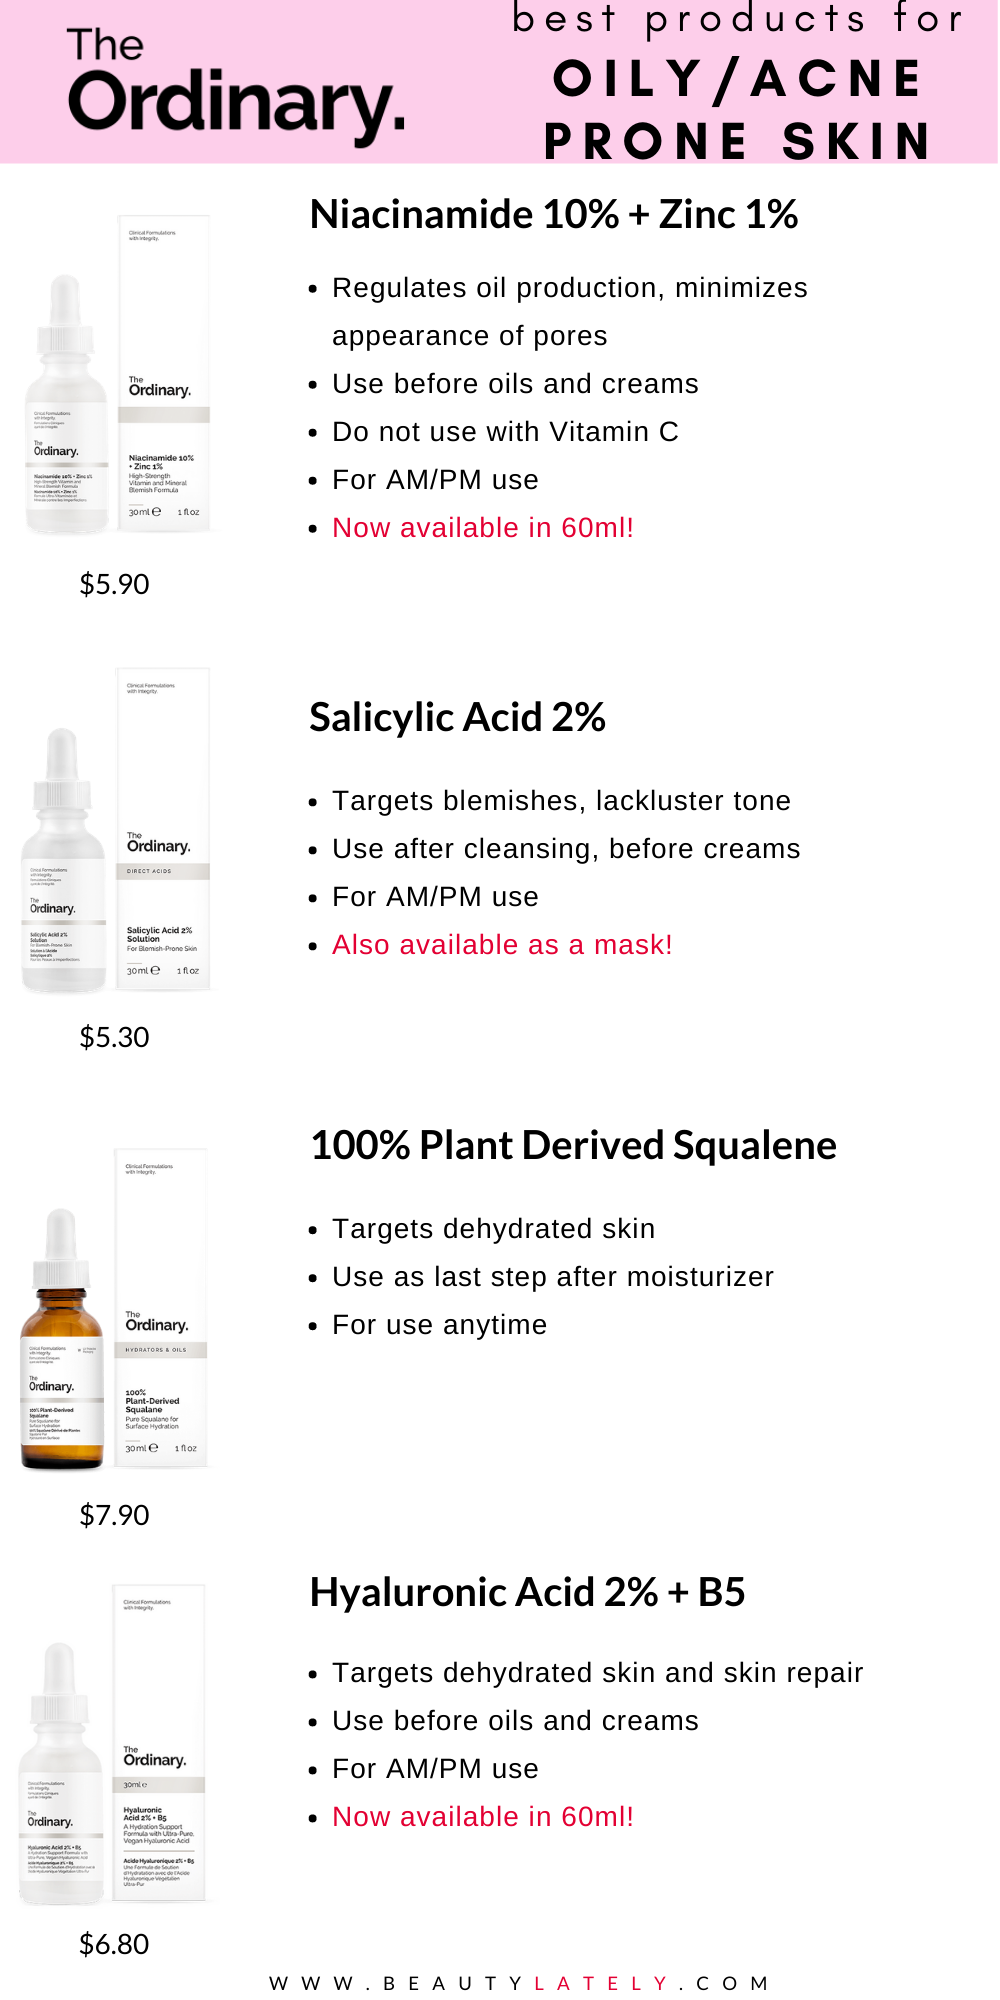 20 Best Face Care Products For Oily Skin In 2020 Oily Skin Care Routine Oily Skin Care Sensitive Acne Prone Skin